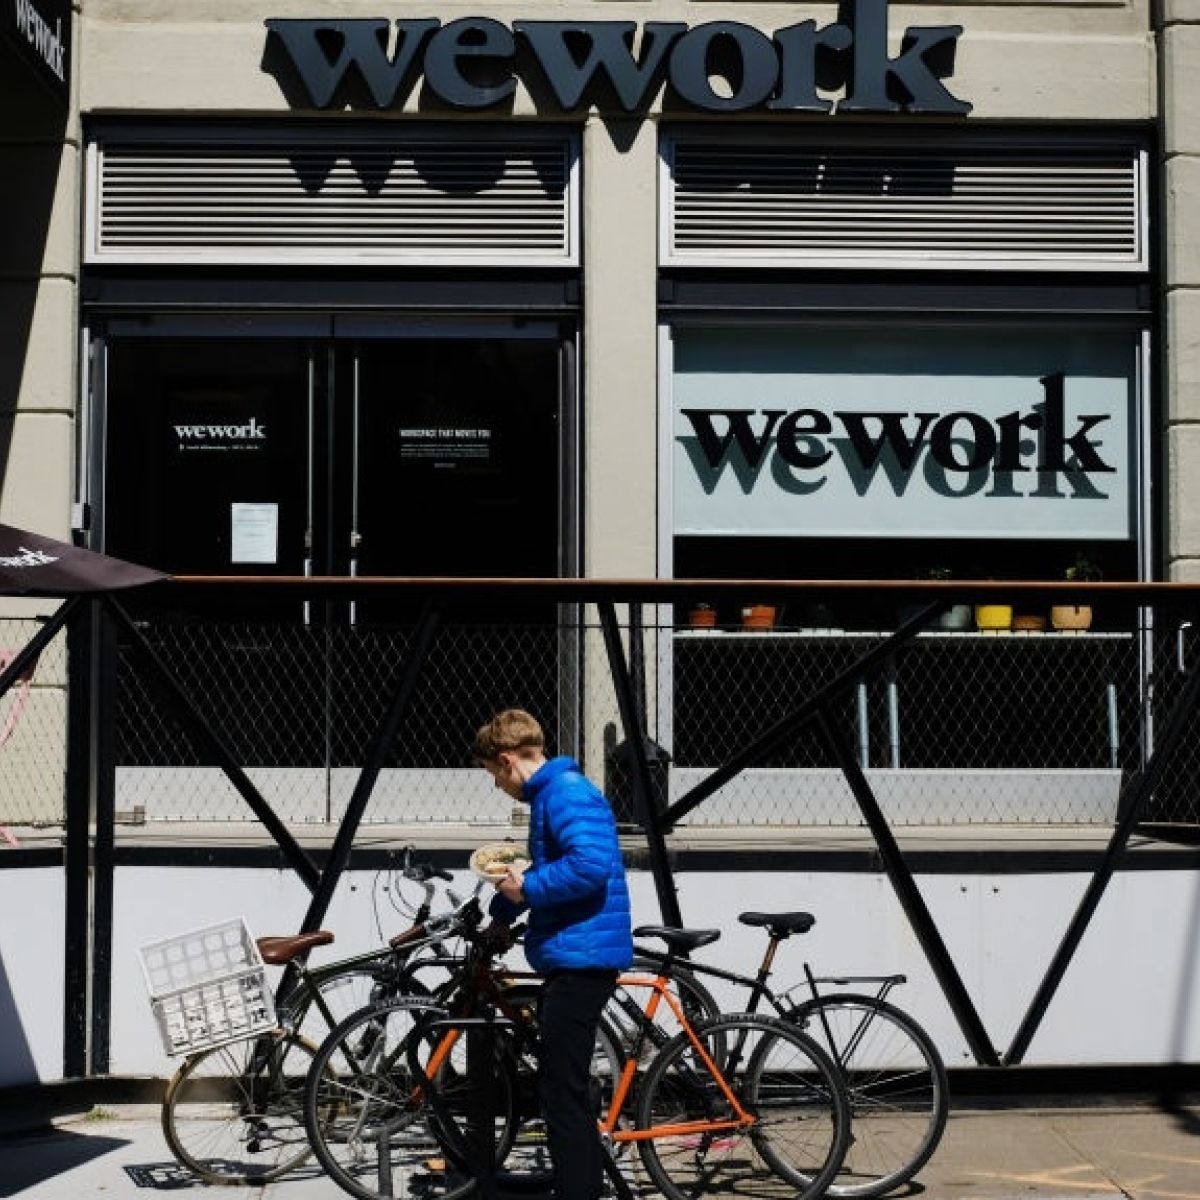 WeWork boss's move to extract cash adds to red flags before IPO